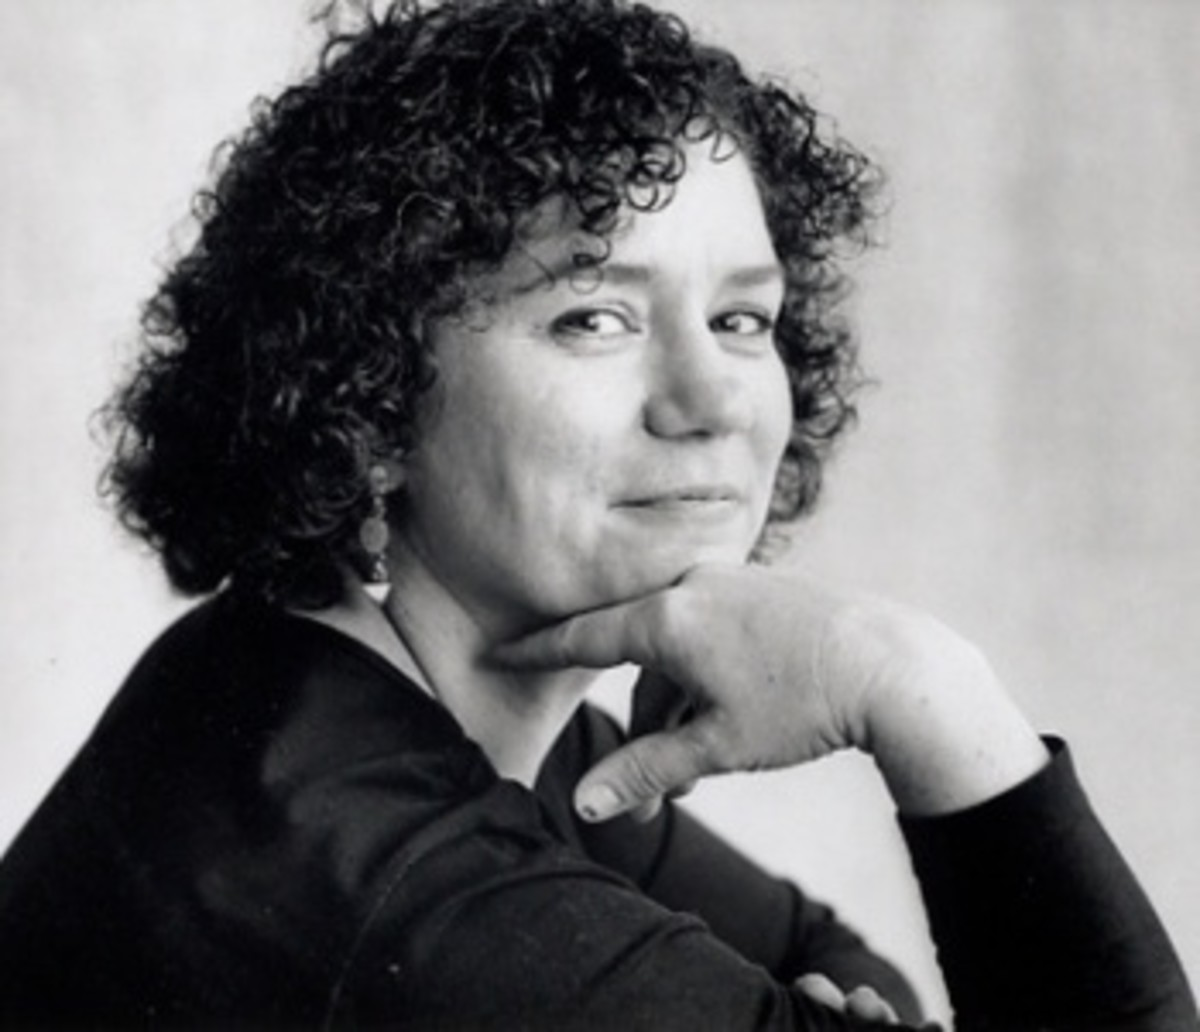 April Henry, the book's author